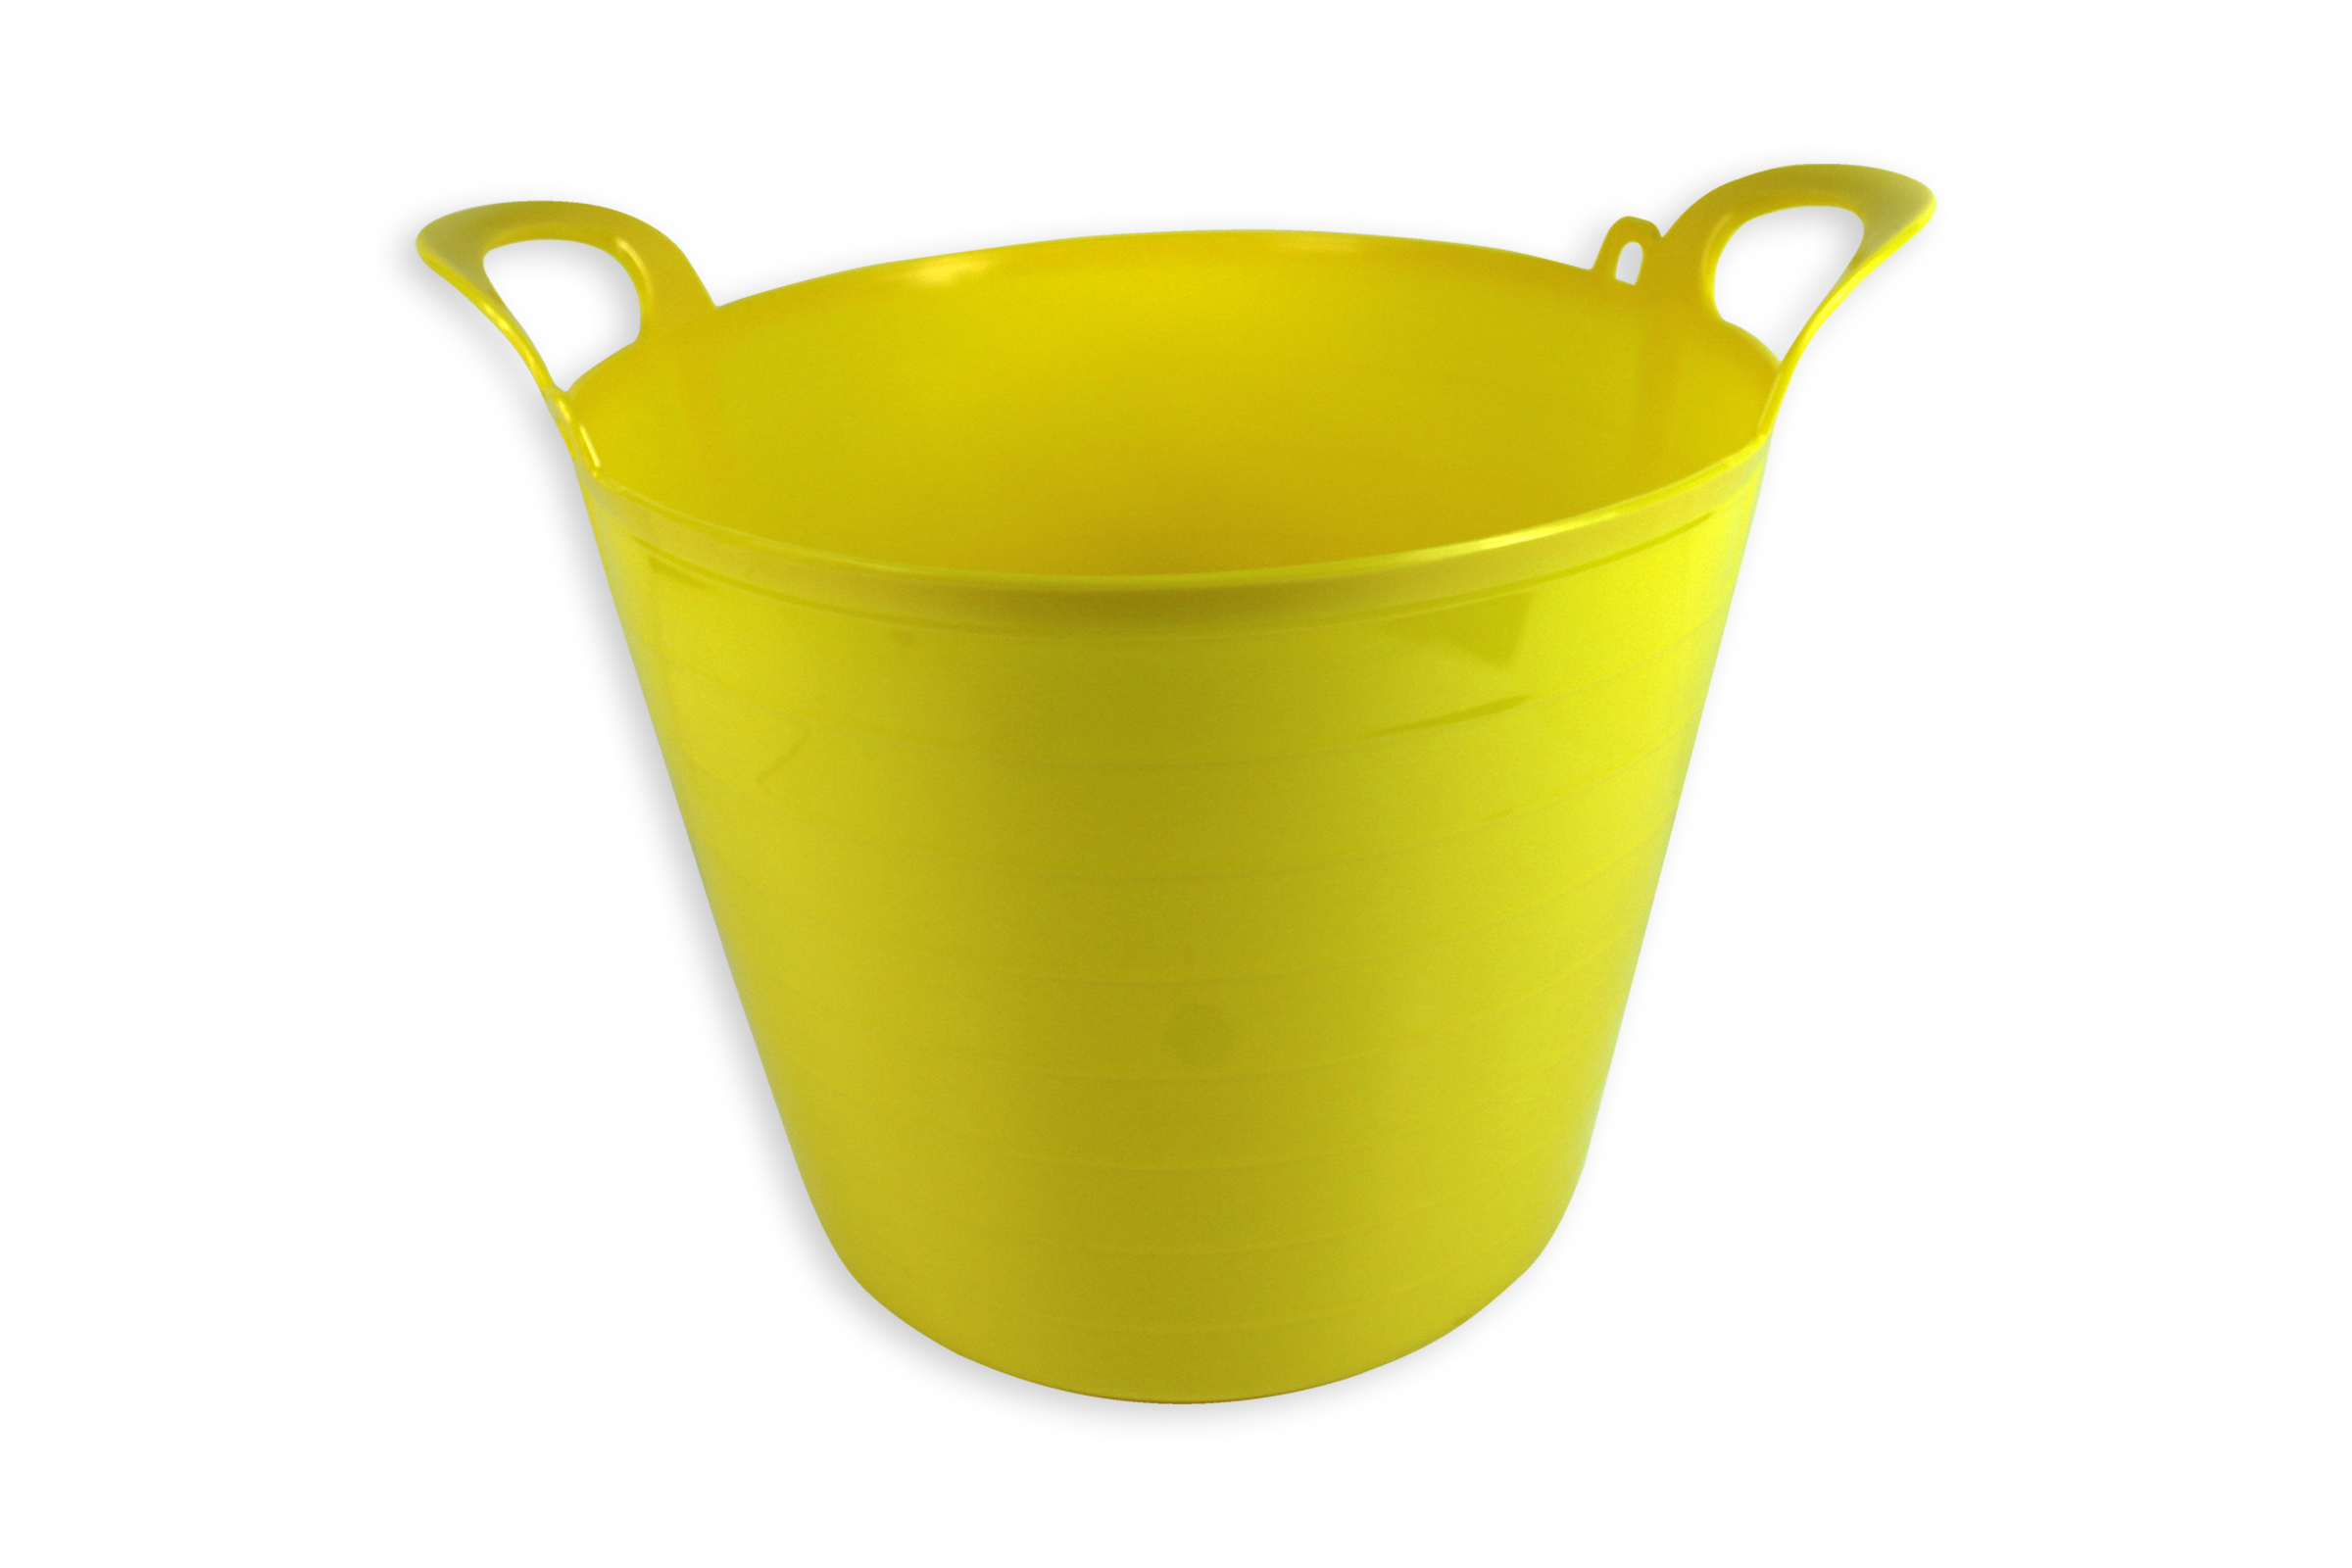 oval res colour storage s technicalissues inflowcomponent garden container p bucket content x flexible trug tub global inflow flexi bin